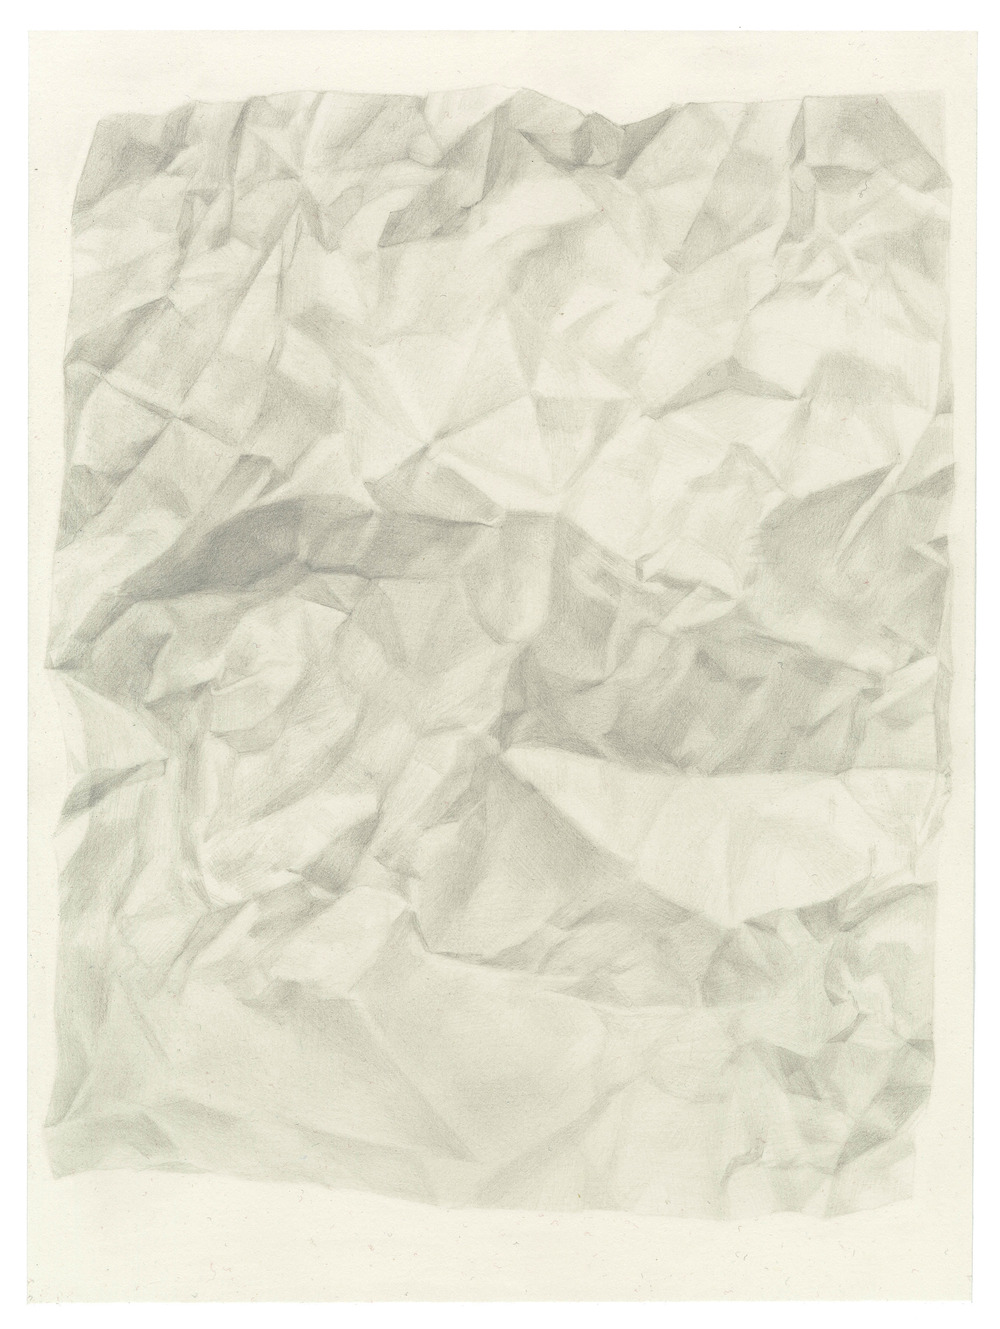 Juliet Jacobson, Untitled Paper Drawing 7, Graphite on Paper, 2013